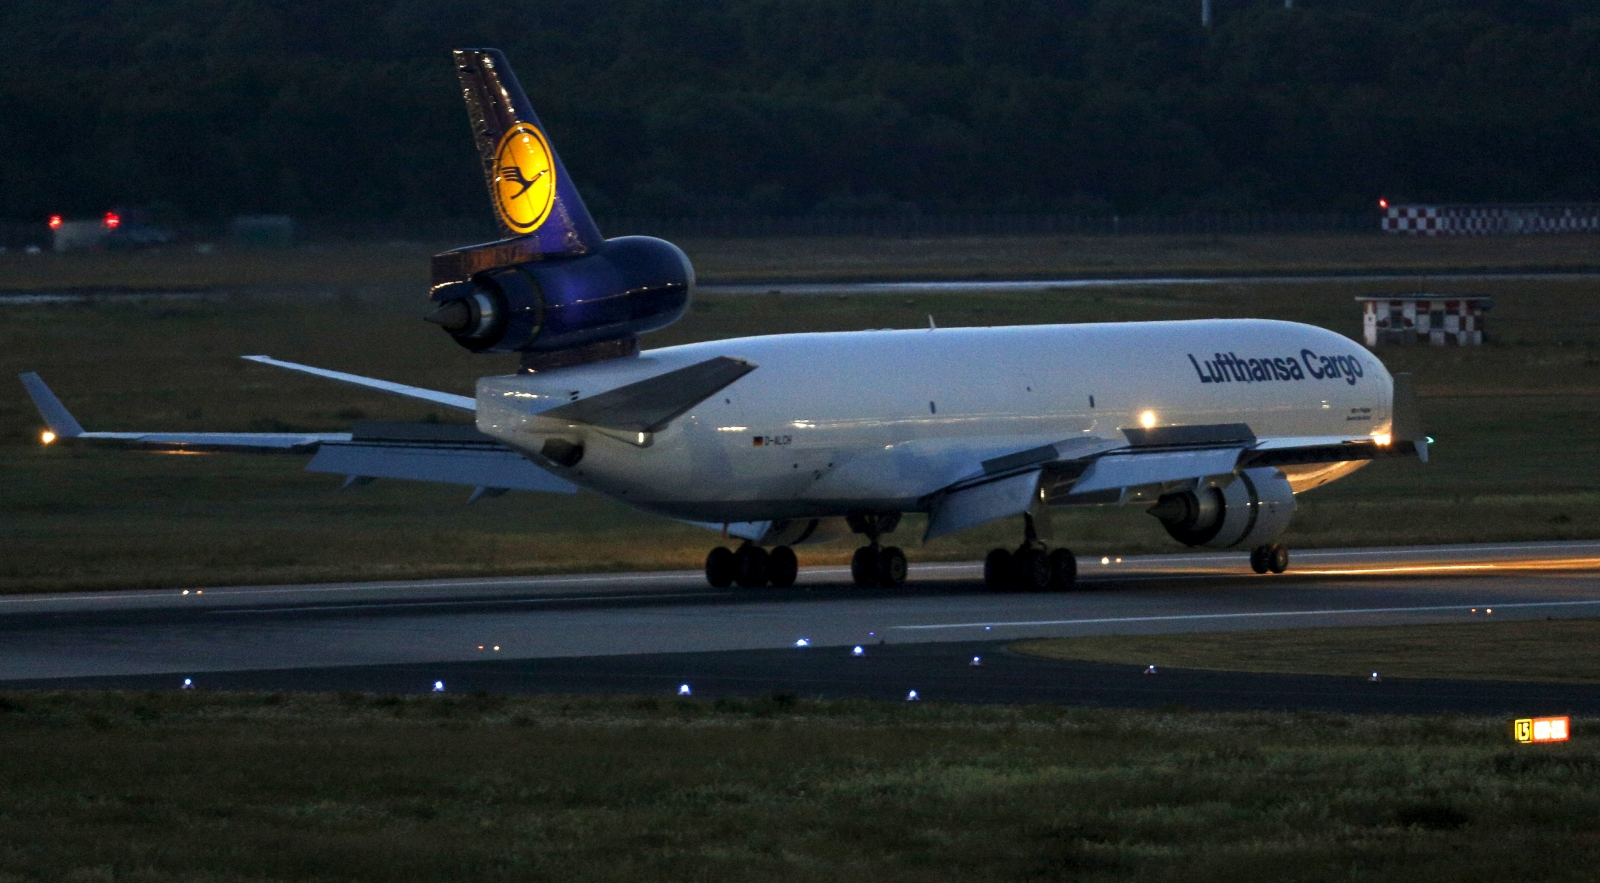 Lufthansa returns bodies from Germanwings crash